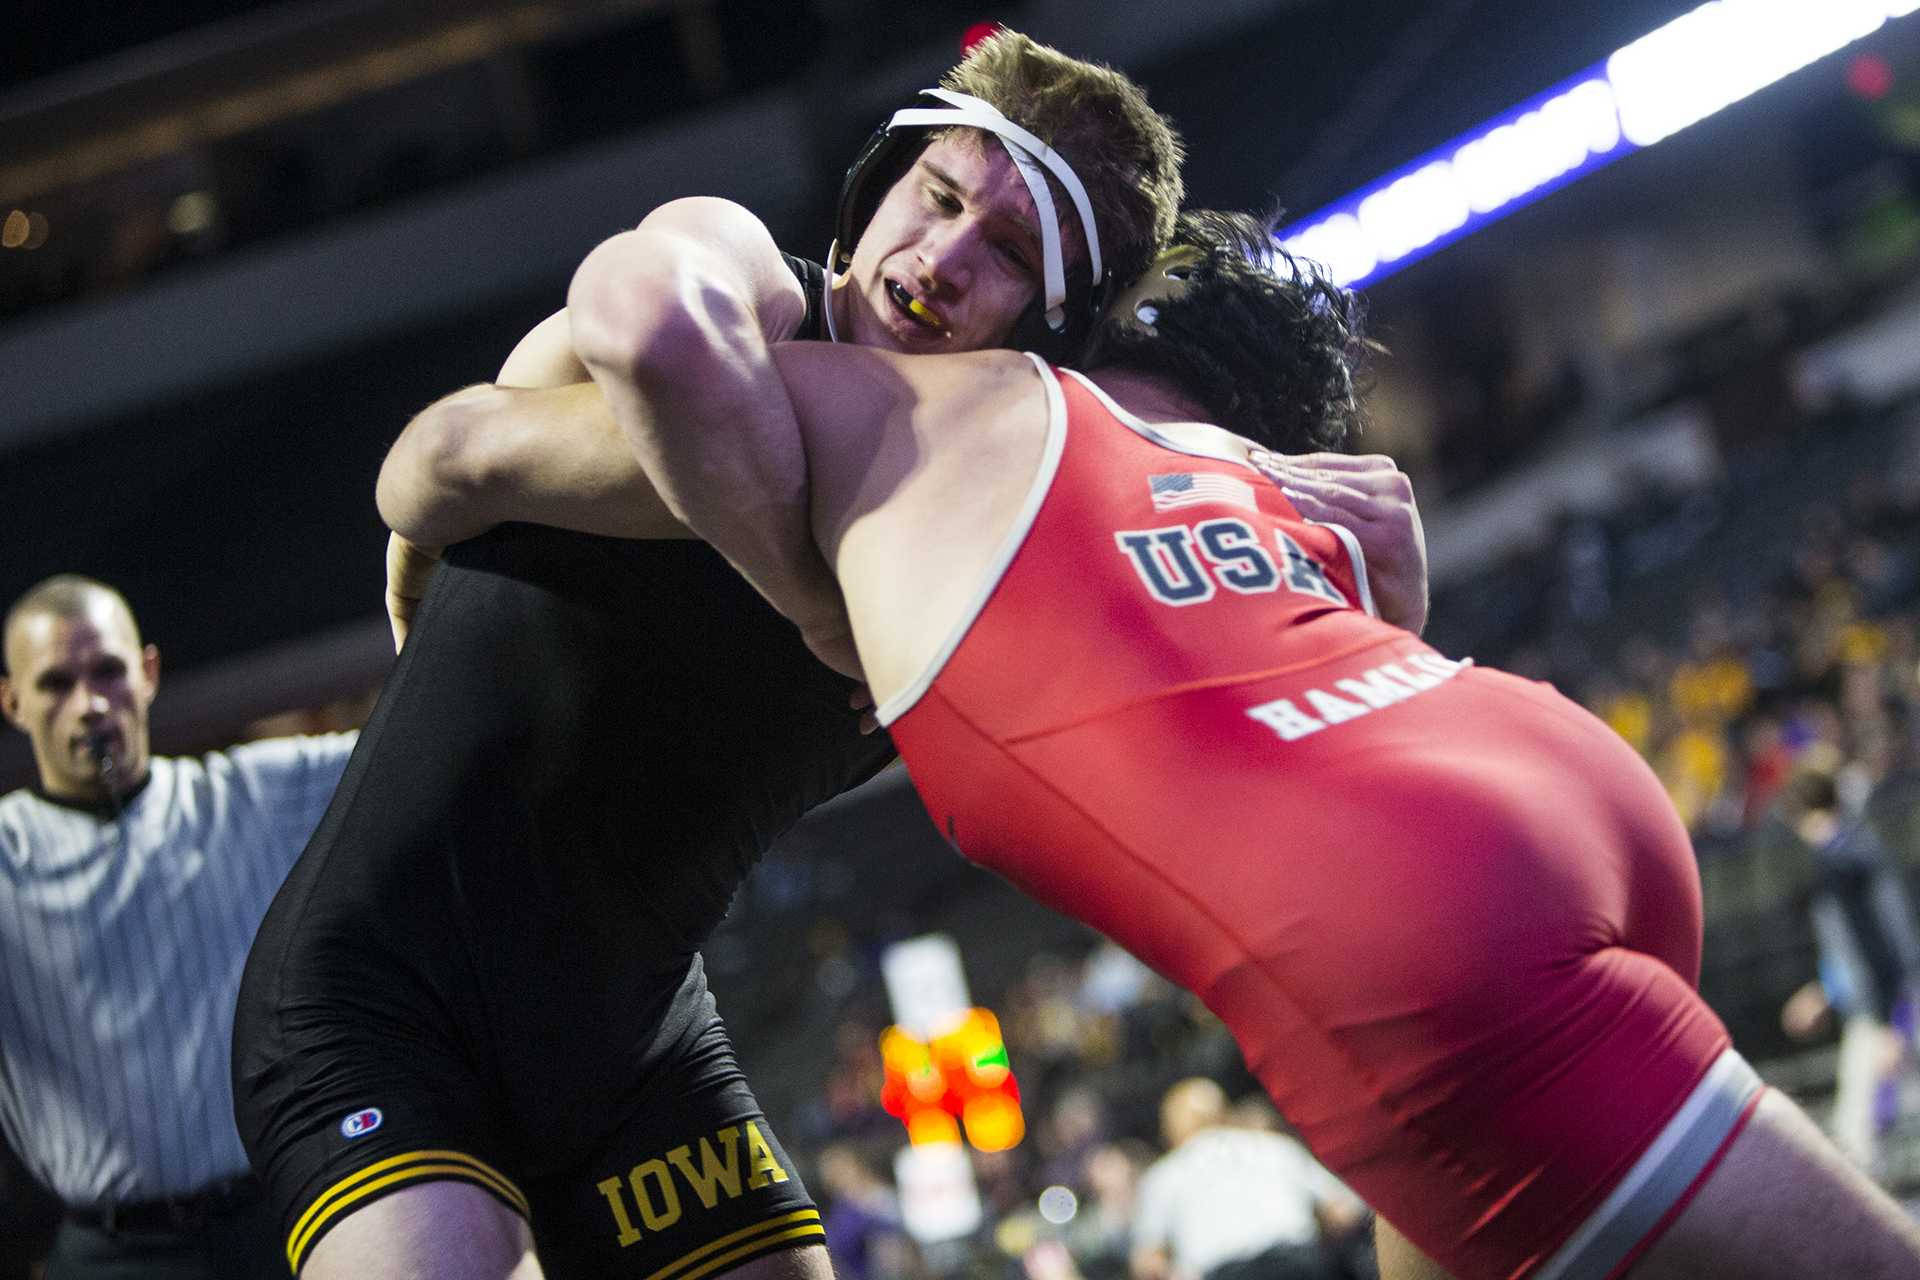 Iowa's 184-pound Cash Wilcke wrestles during the first session of the 55th Annual Midlands Championships in the Sears Centre in Hoffman Estates, Illinois, on Friday, Dec. 29, 2017. (Joseph Cress/The Daily Iowan)